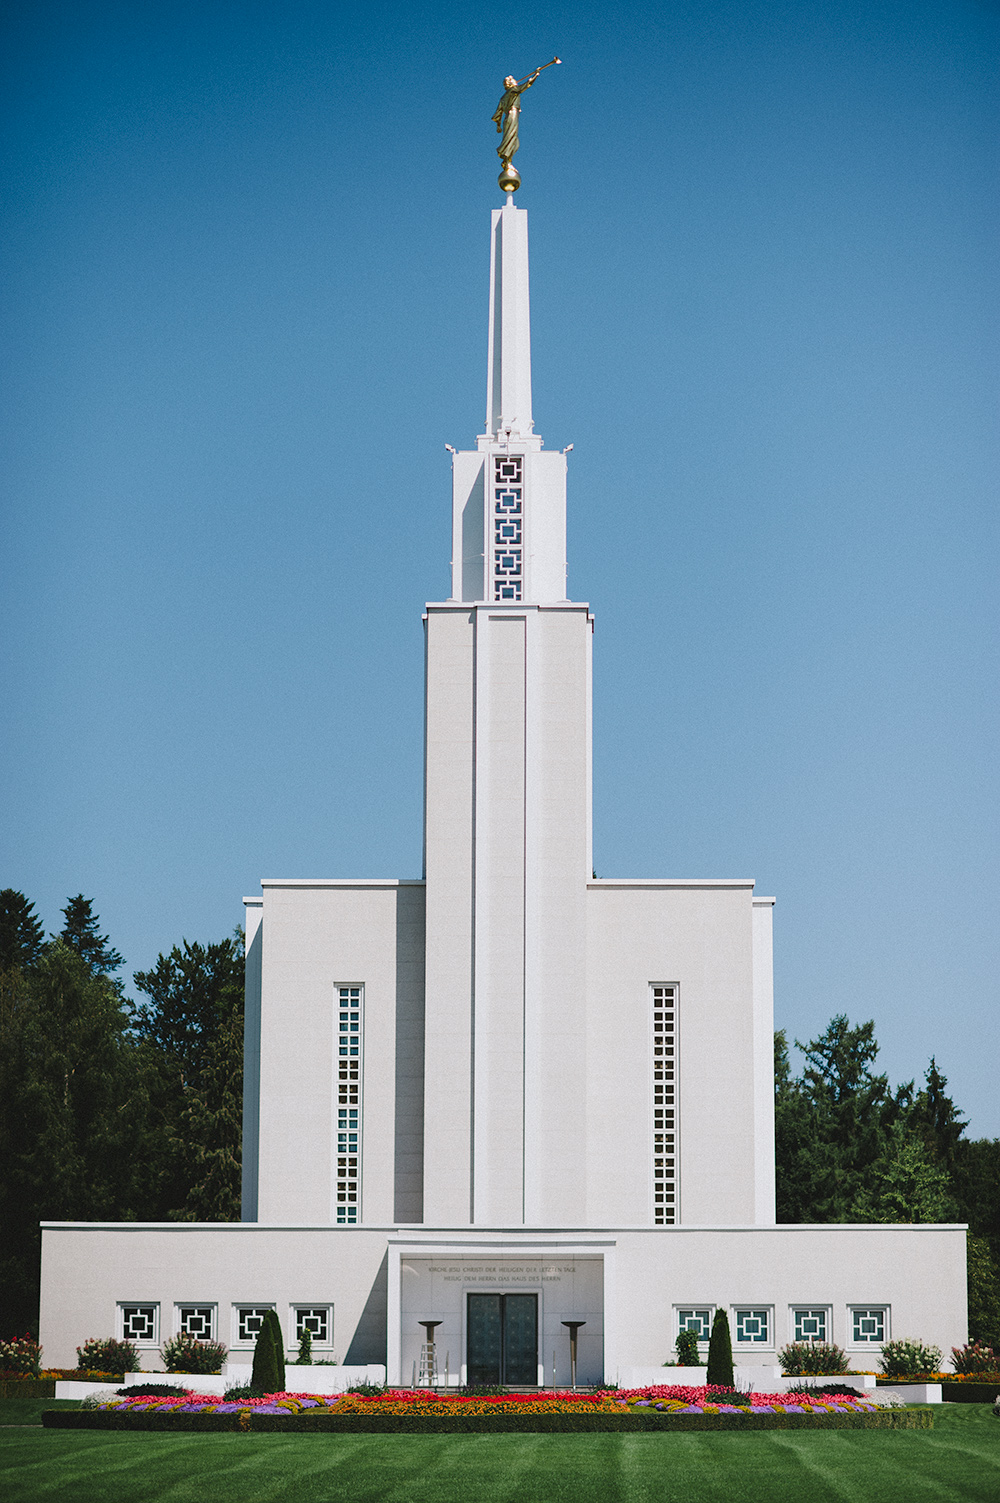 Bern Switzerland Temple, dedicated in 1955 by President McKay; rededicated in 1992 by President Hinckley